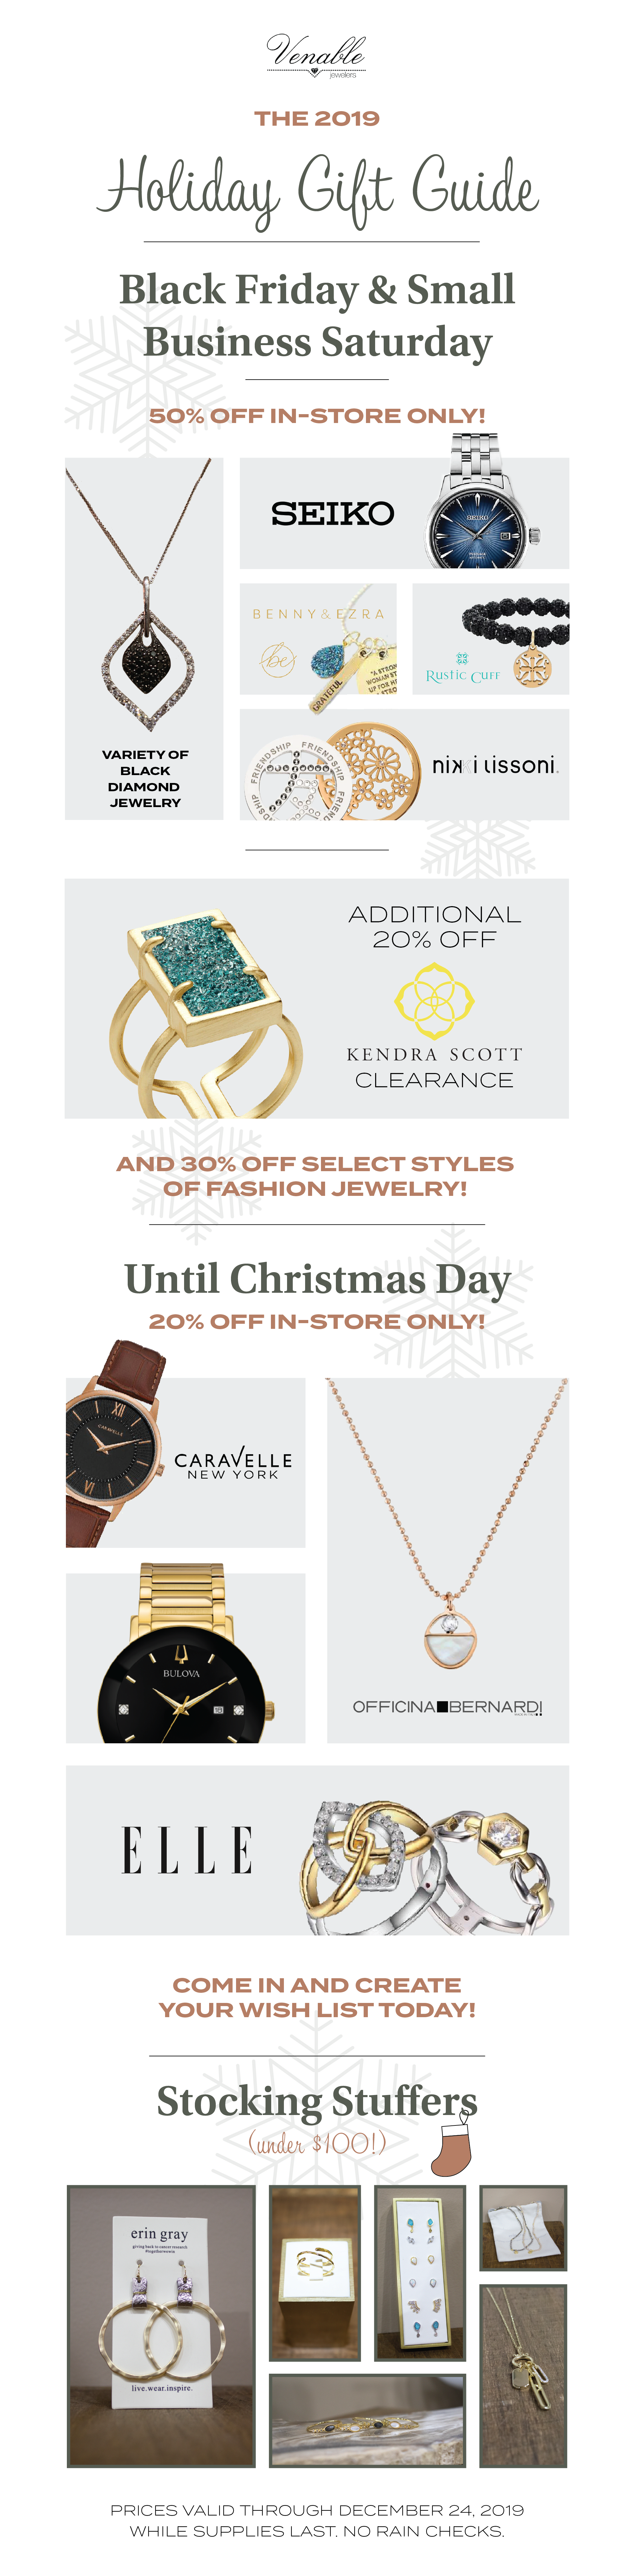 Venable Holiday Gift Guide